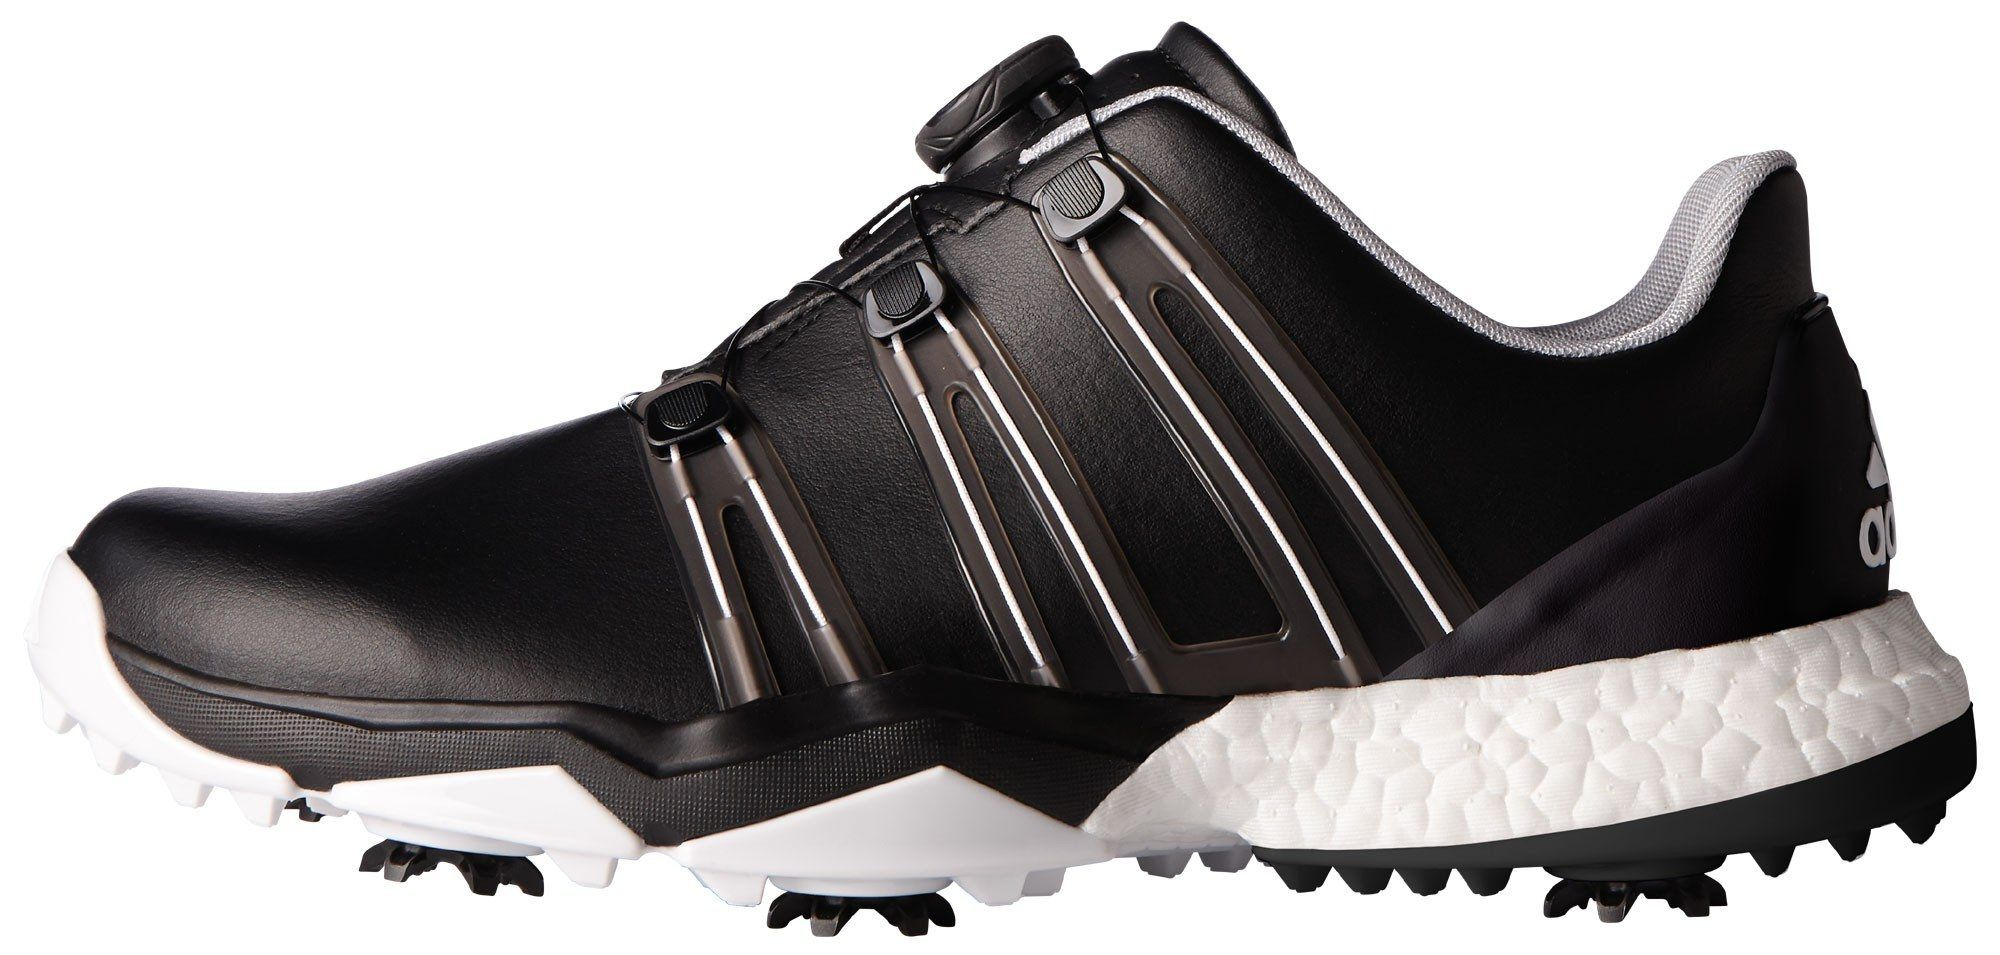 Kids Golf Shoes For Boys And Girls The Best Junior Golf Shoes